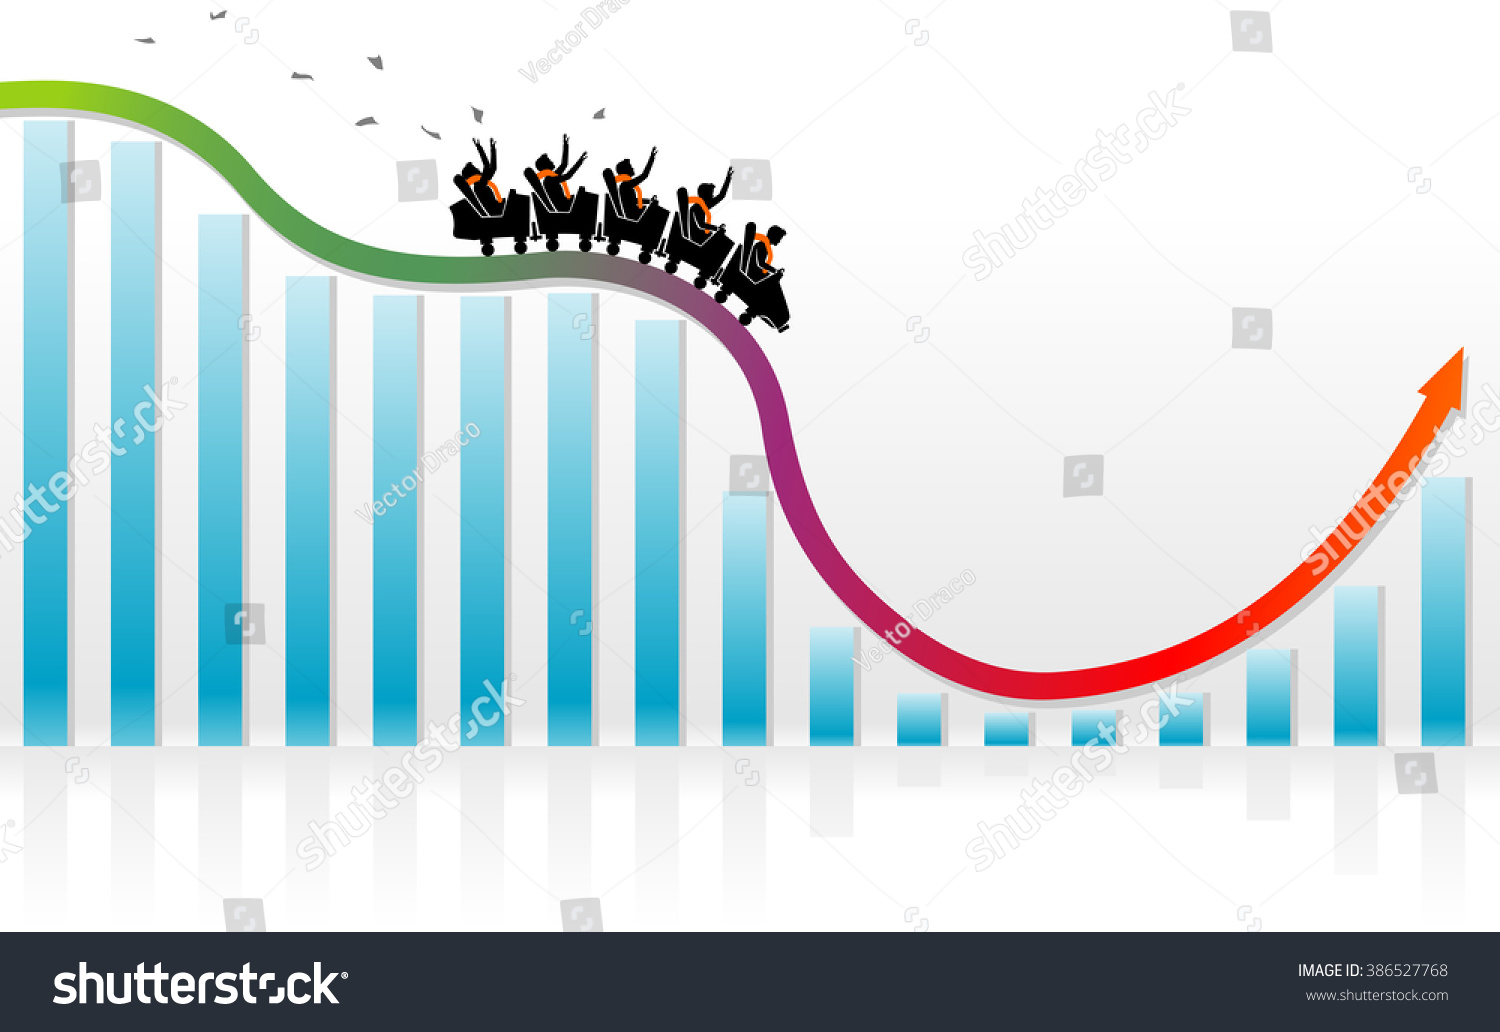 Roller Coaster Graph Recovery Stock Vector Illustration Shutterstock